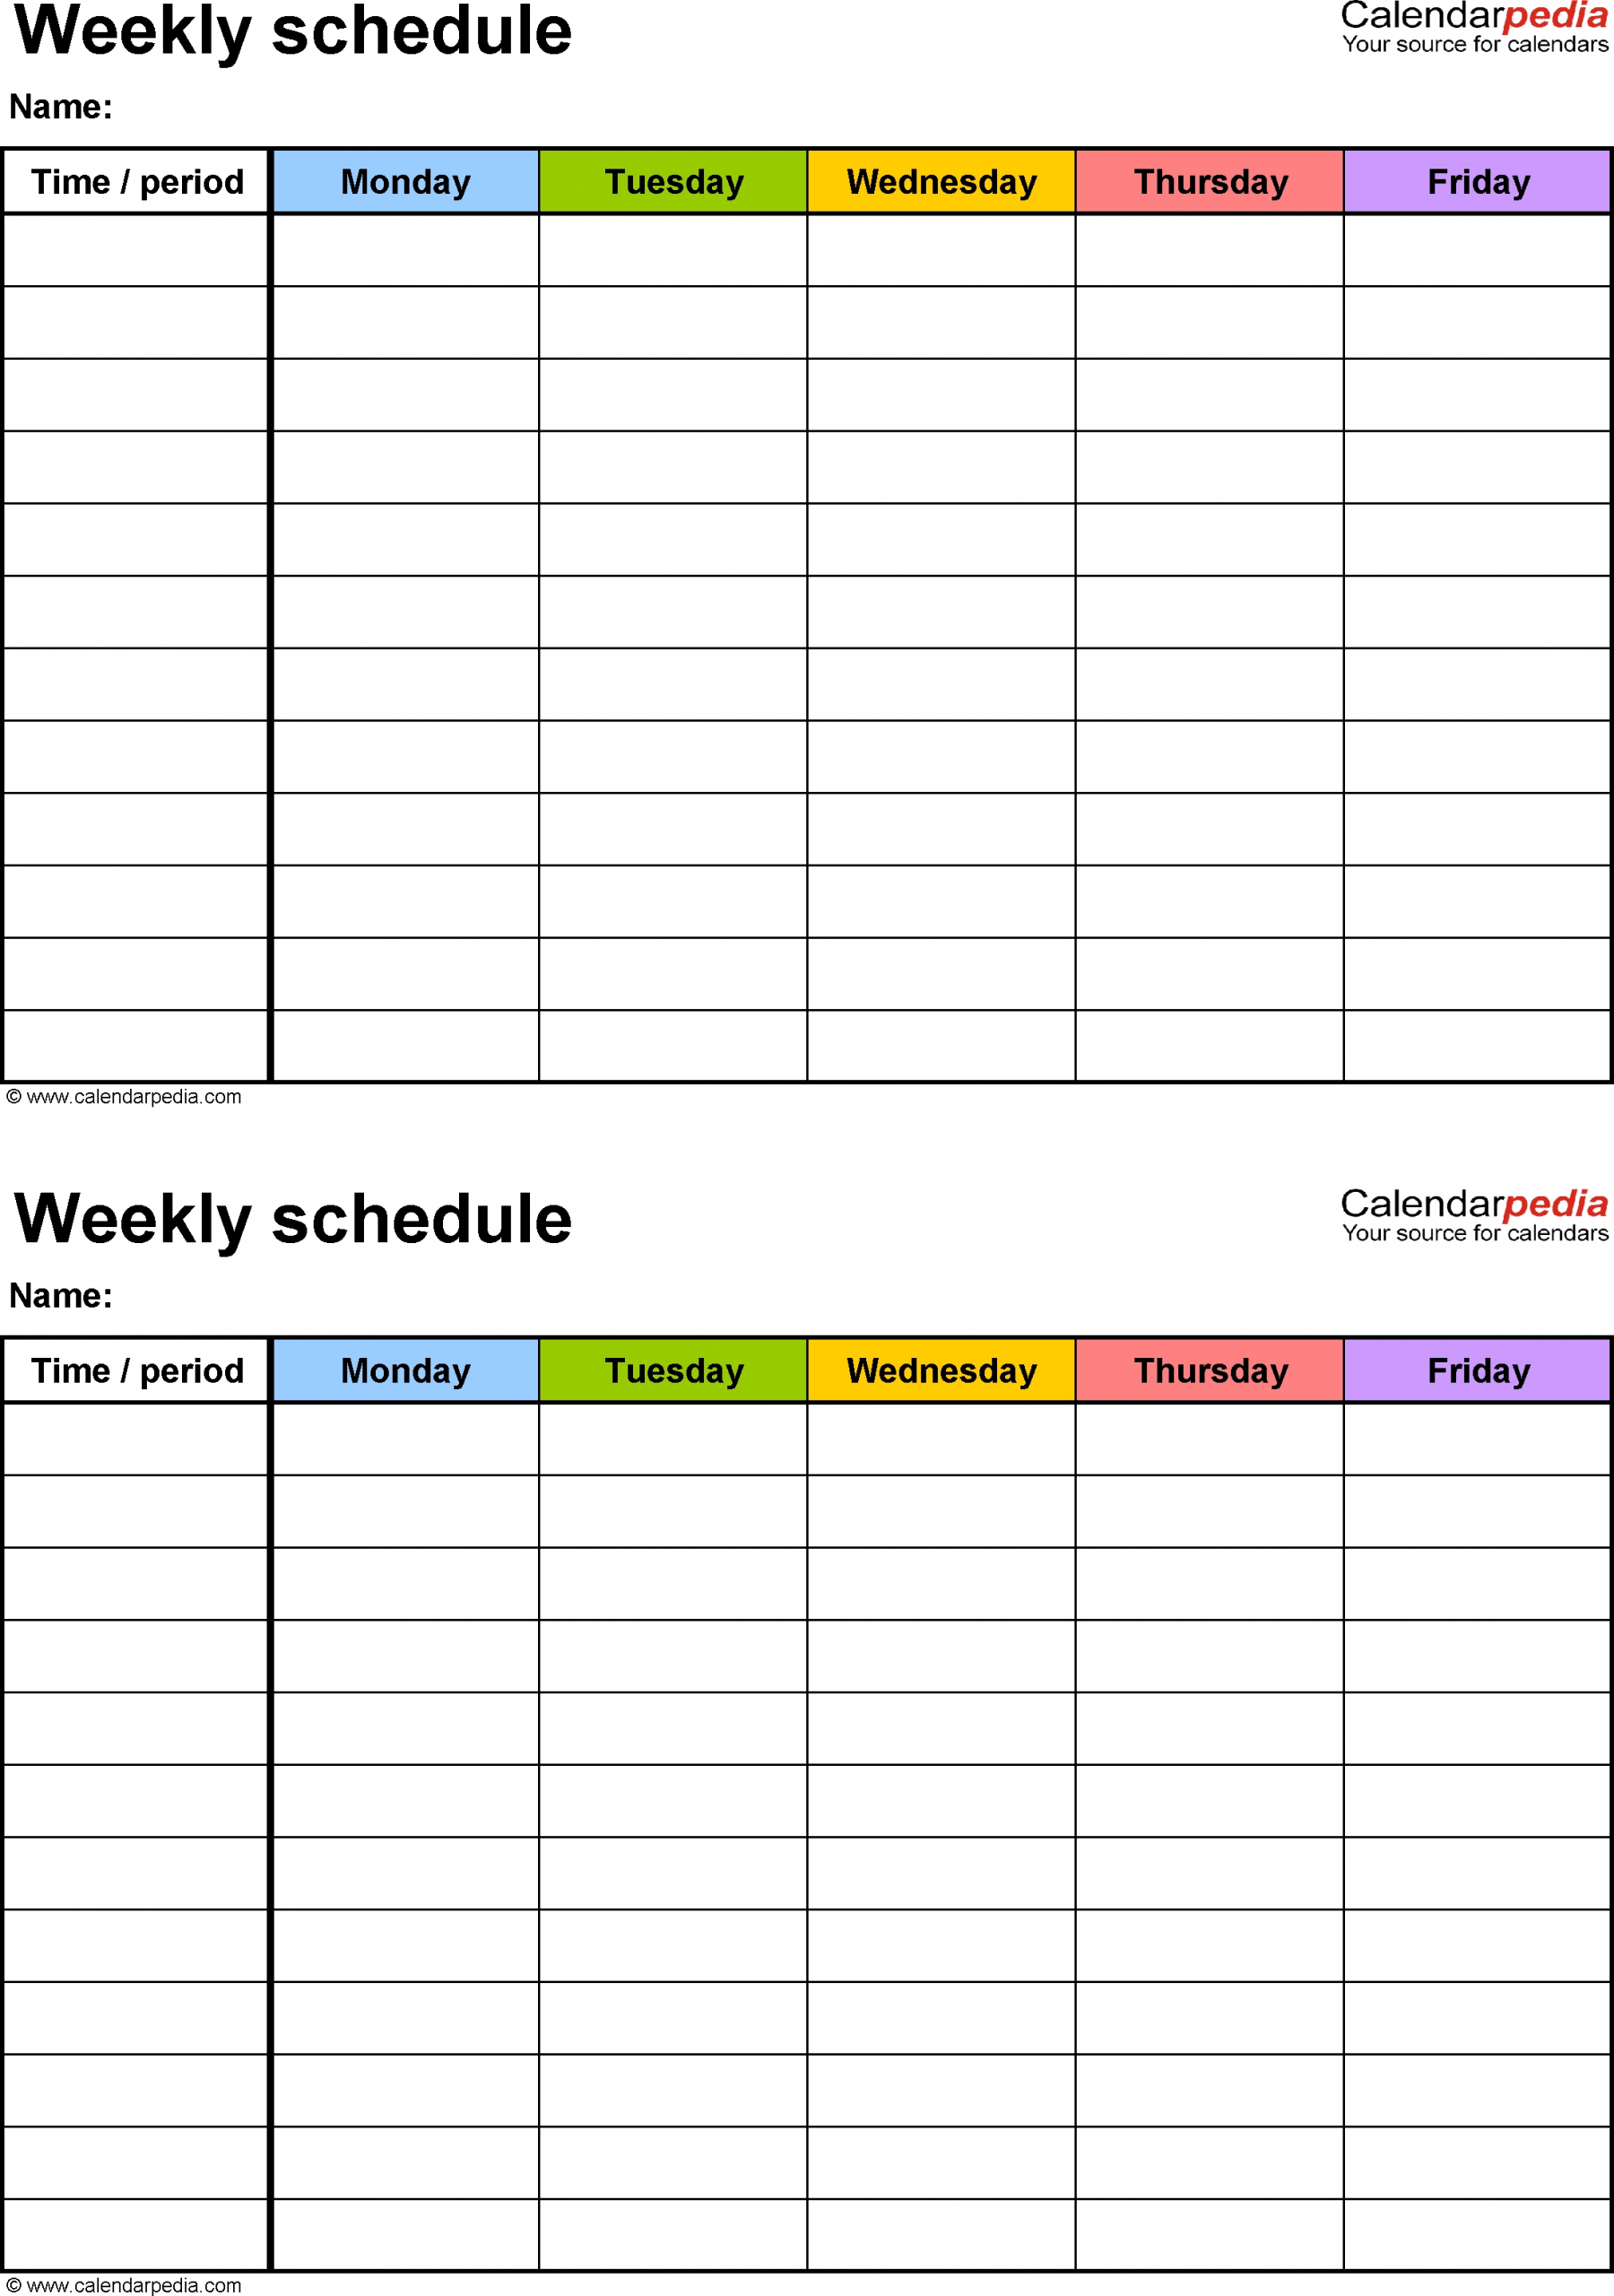 Blank Calendar Monday To Friday   Calendar Template Printable Monday To Friday Blank Week Schedule